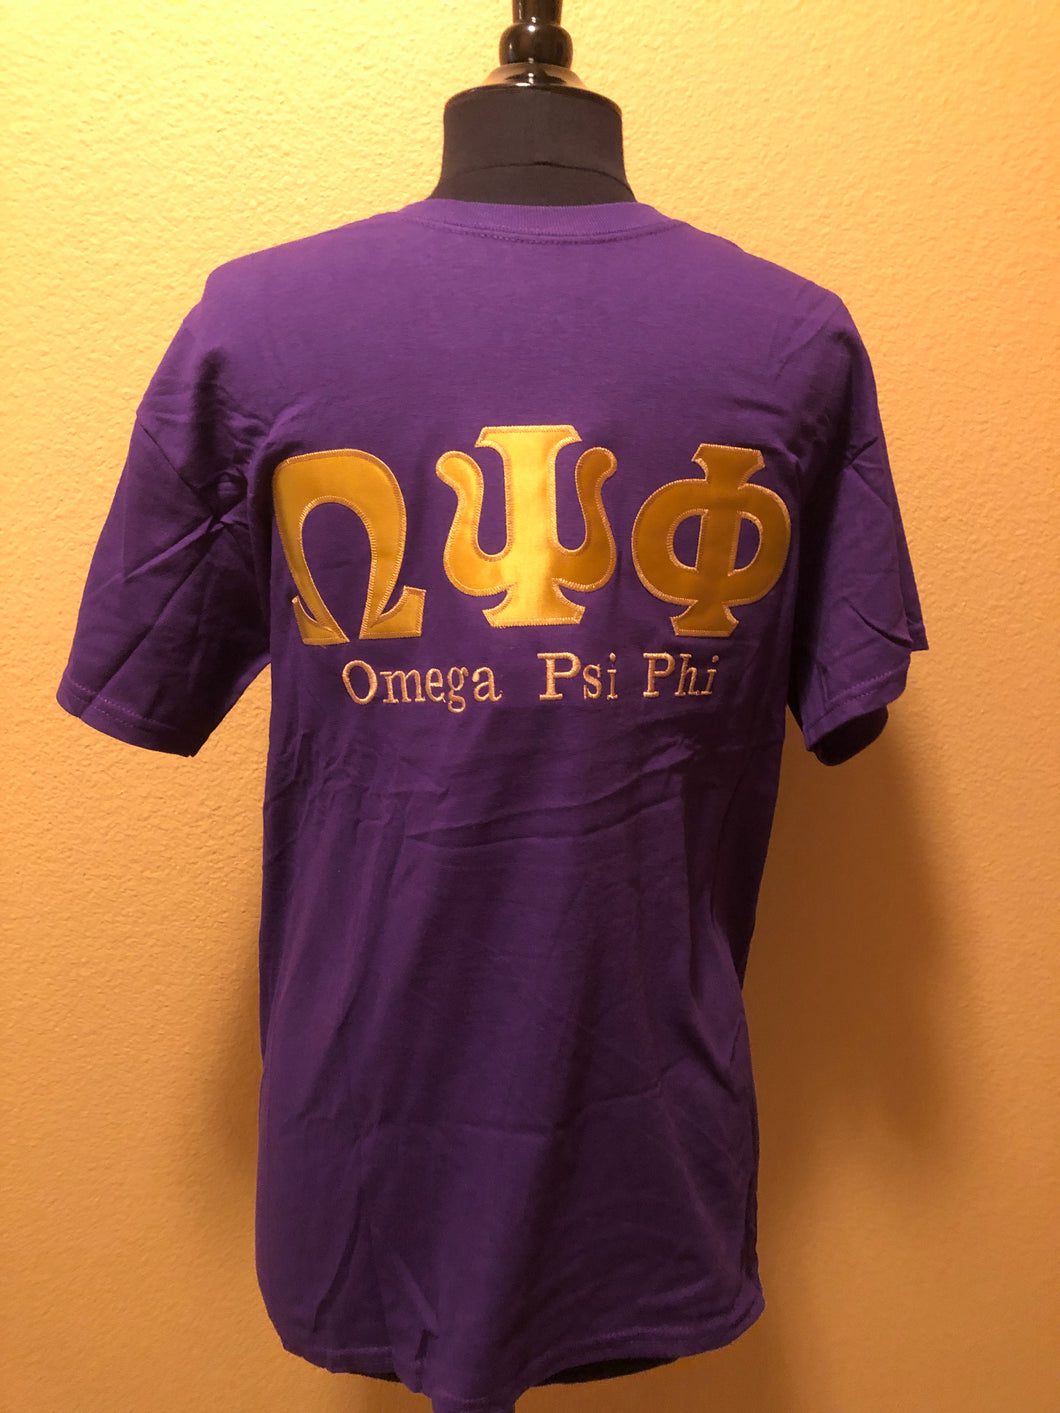 Omega Psi Phi Greek Applique Cotton Tee